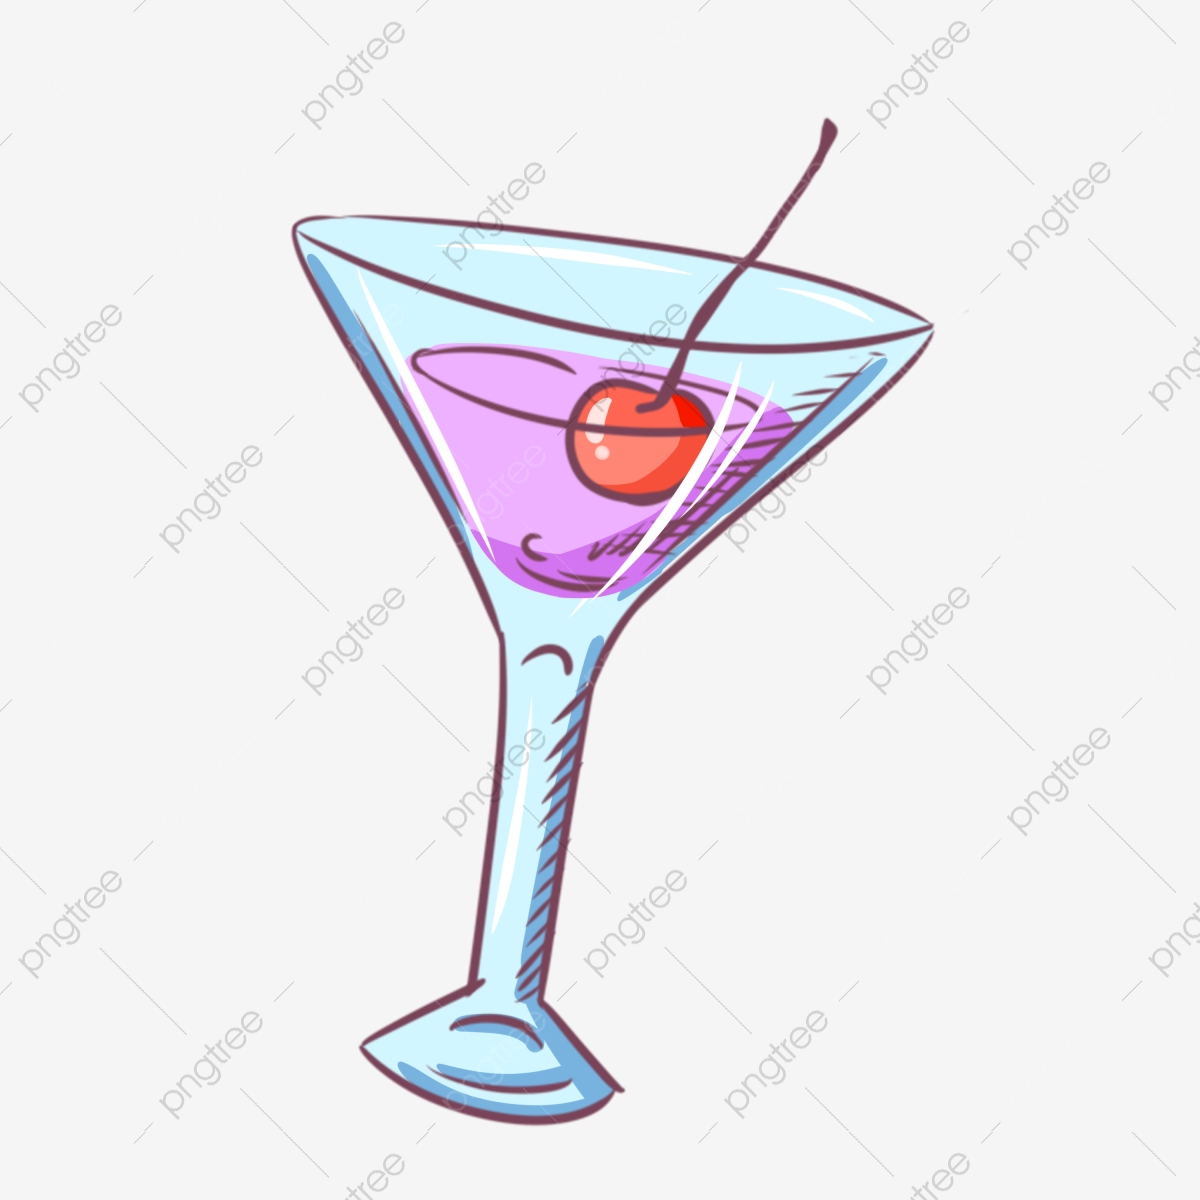 Martini Cocktail Cocktail Clipart Martini Cocktail Png Transparent Clipart Image And Psd File For Free Download